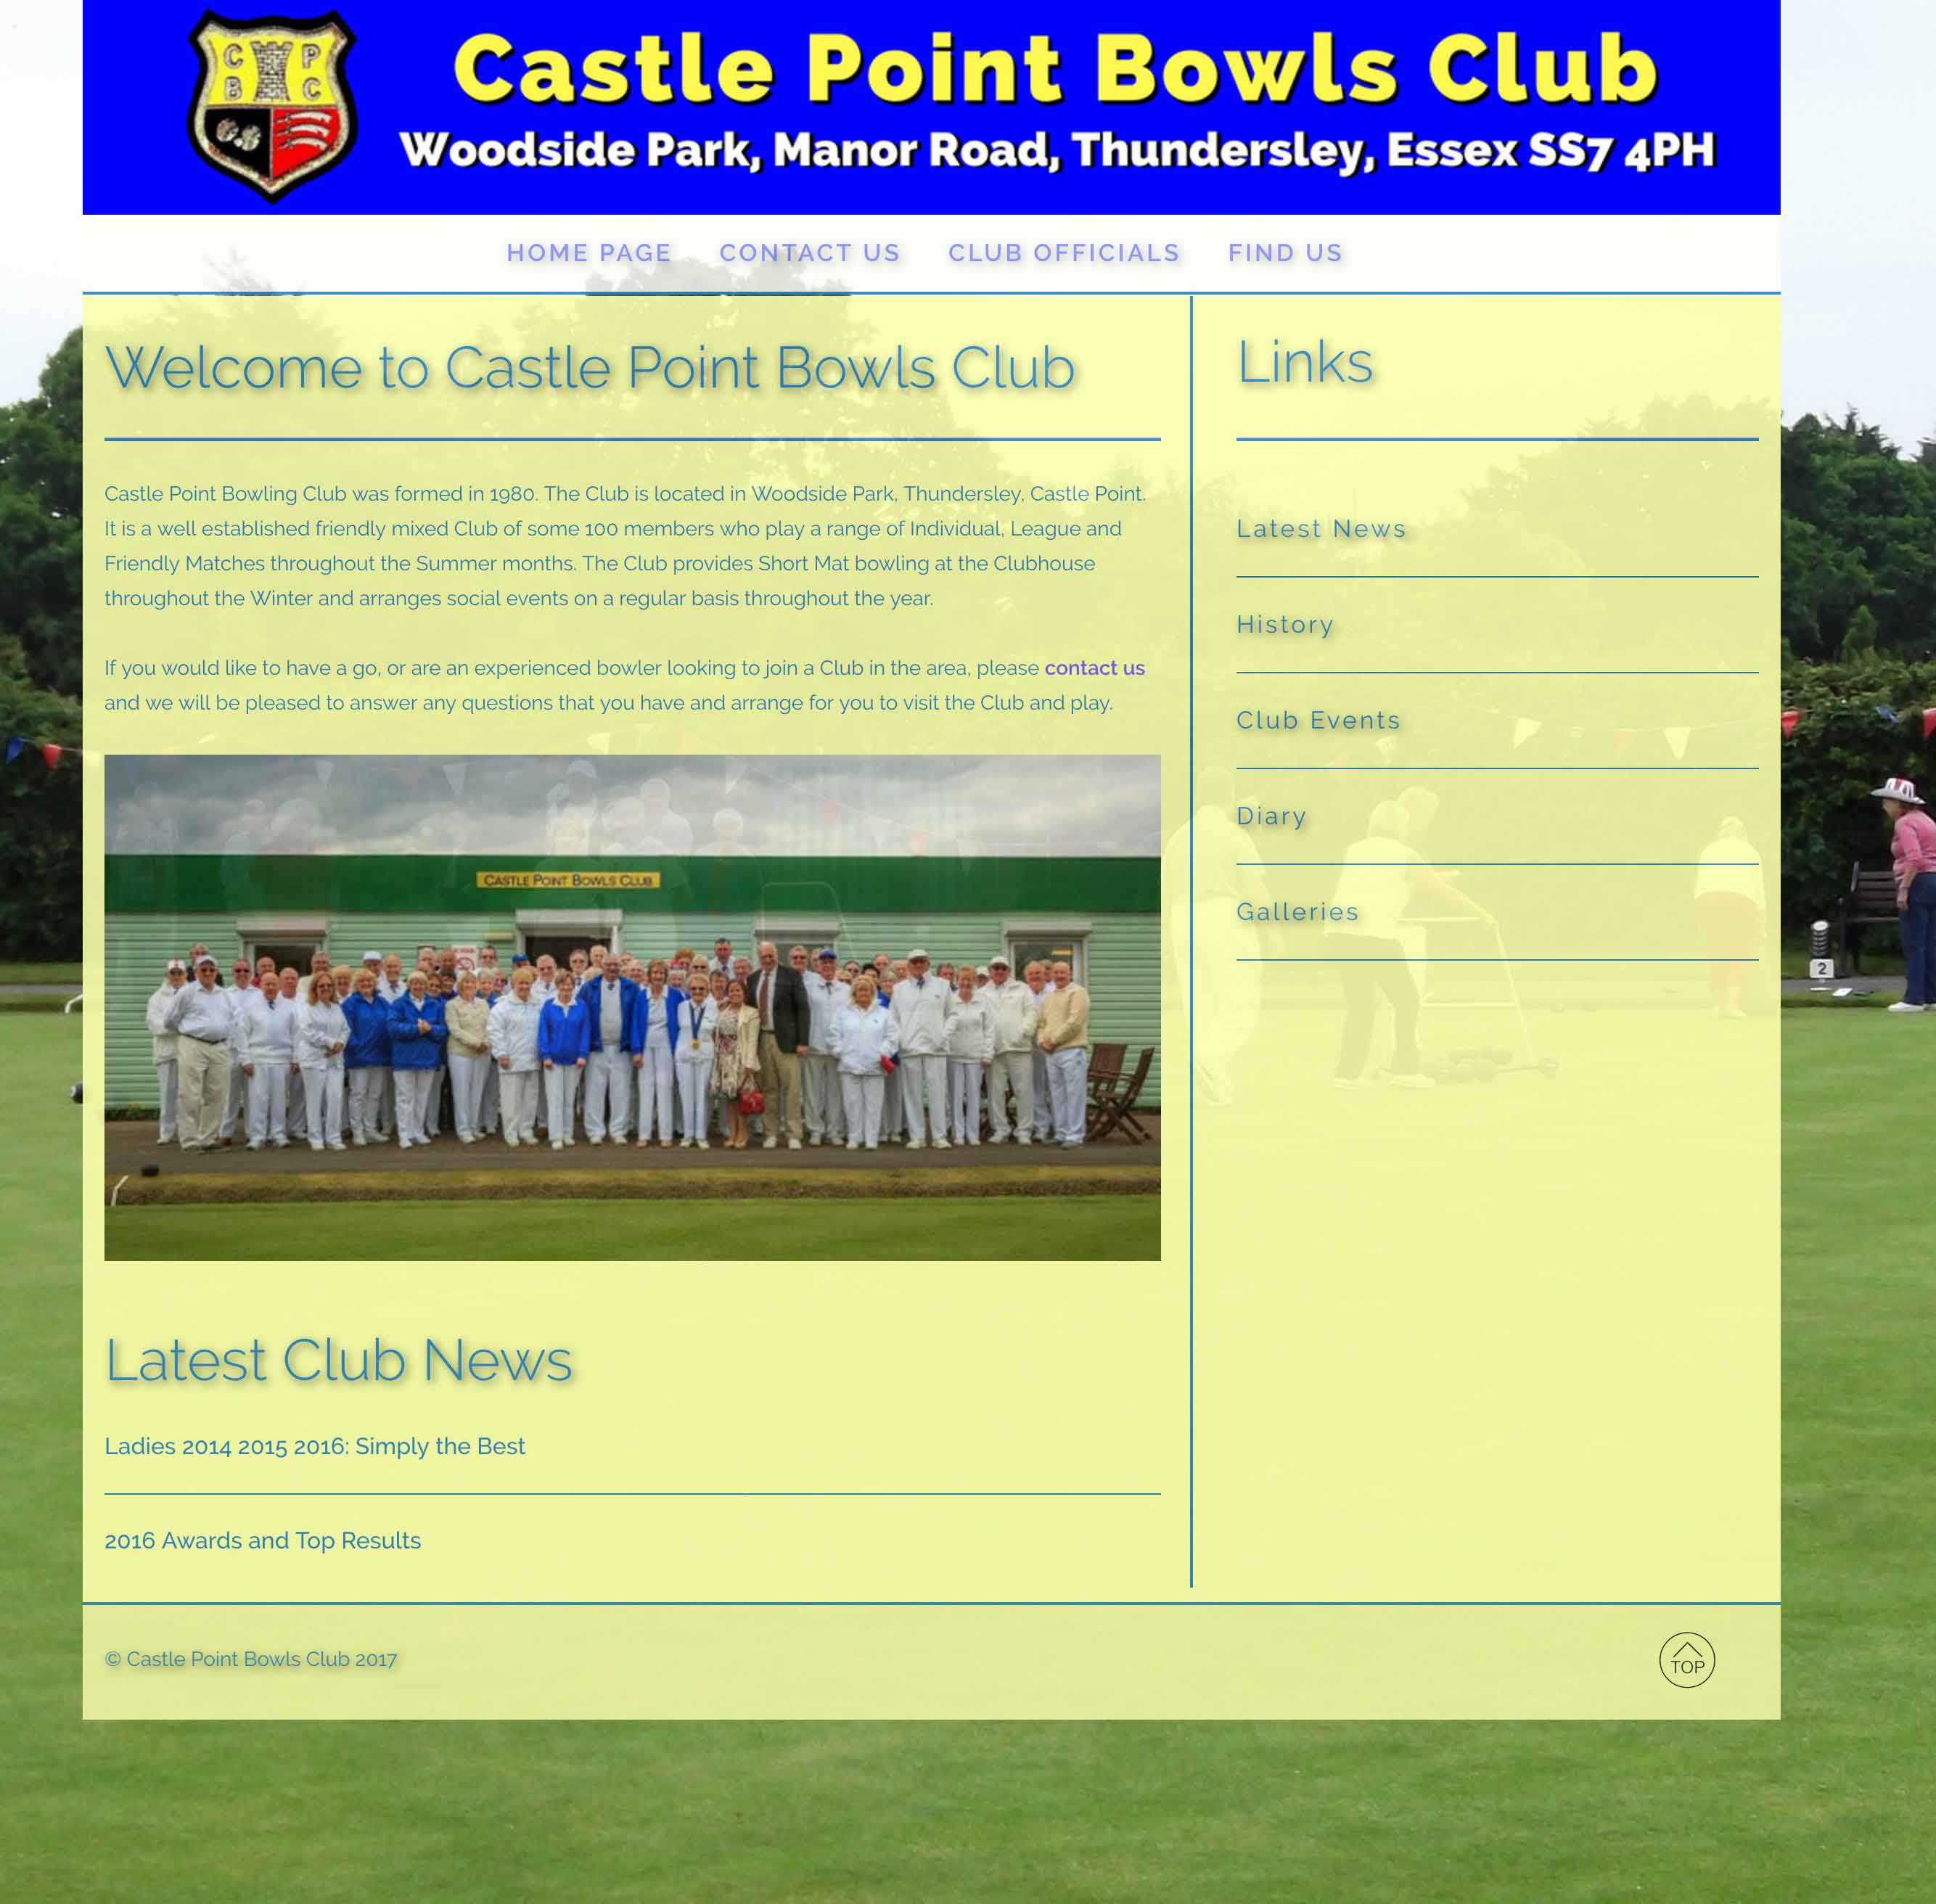 Castle Point Bowls Project Image